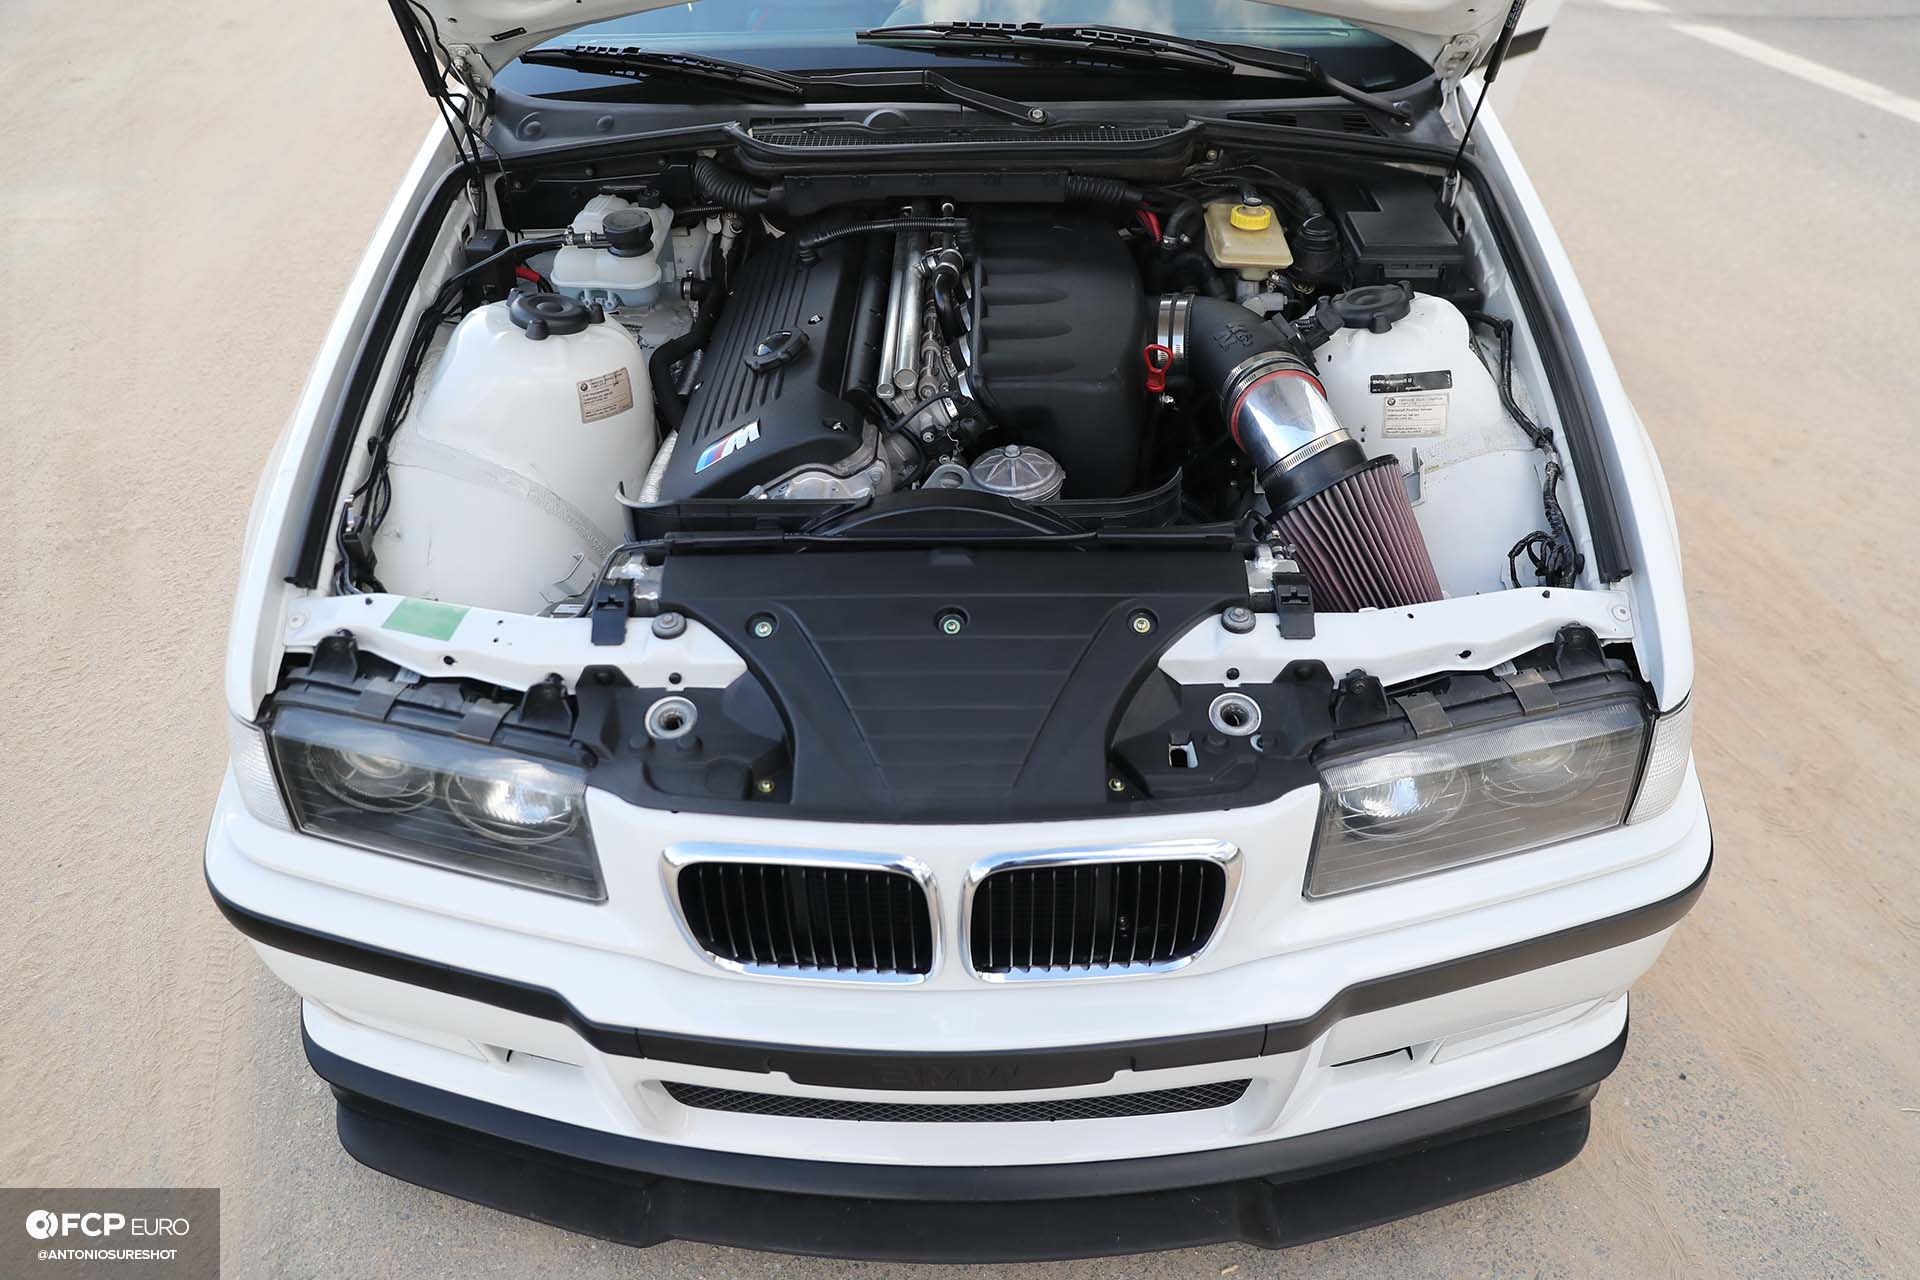 Garage Welt E36 BMW M3 4door sedan S54 swap